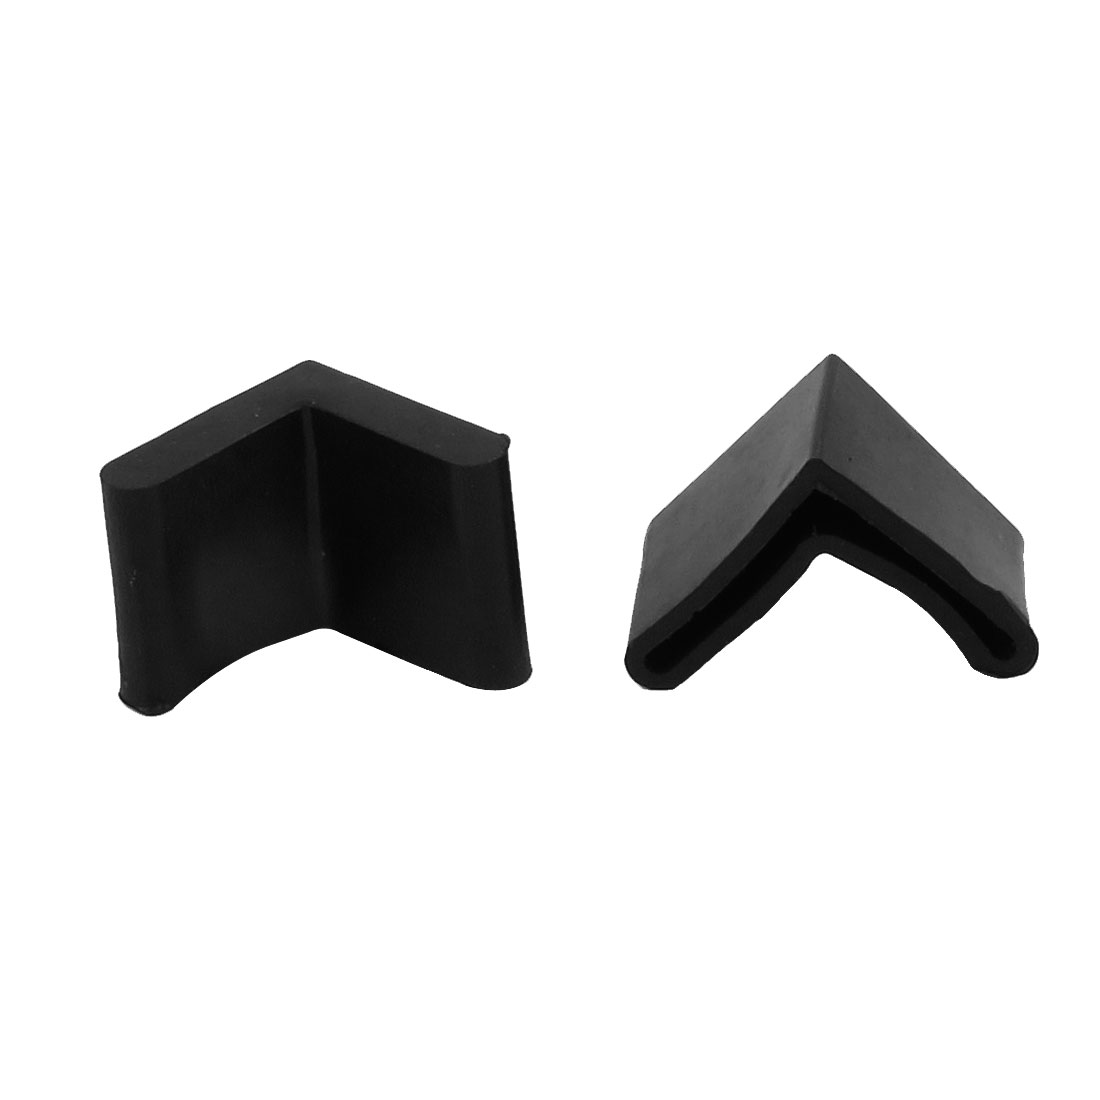 2pcs 29mmx29mm Black Rubber L Shaped Furniture Chair Table Leg Tip Recessed Feet Pad